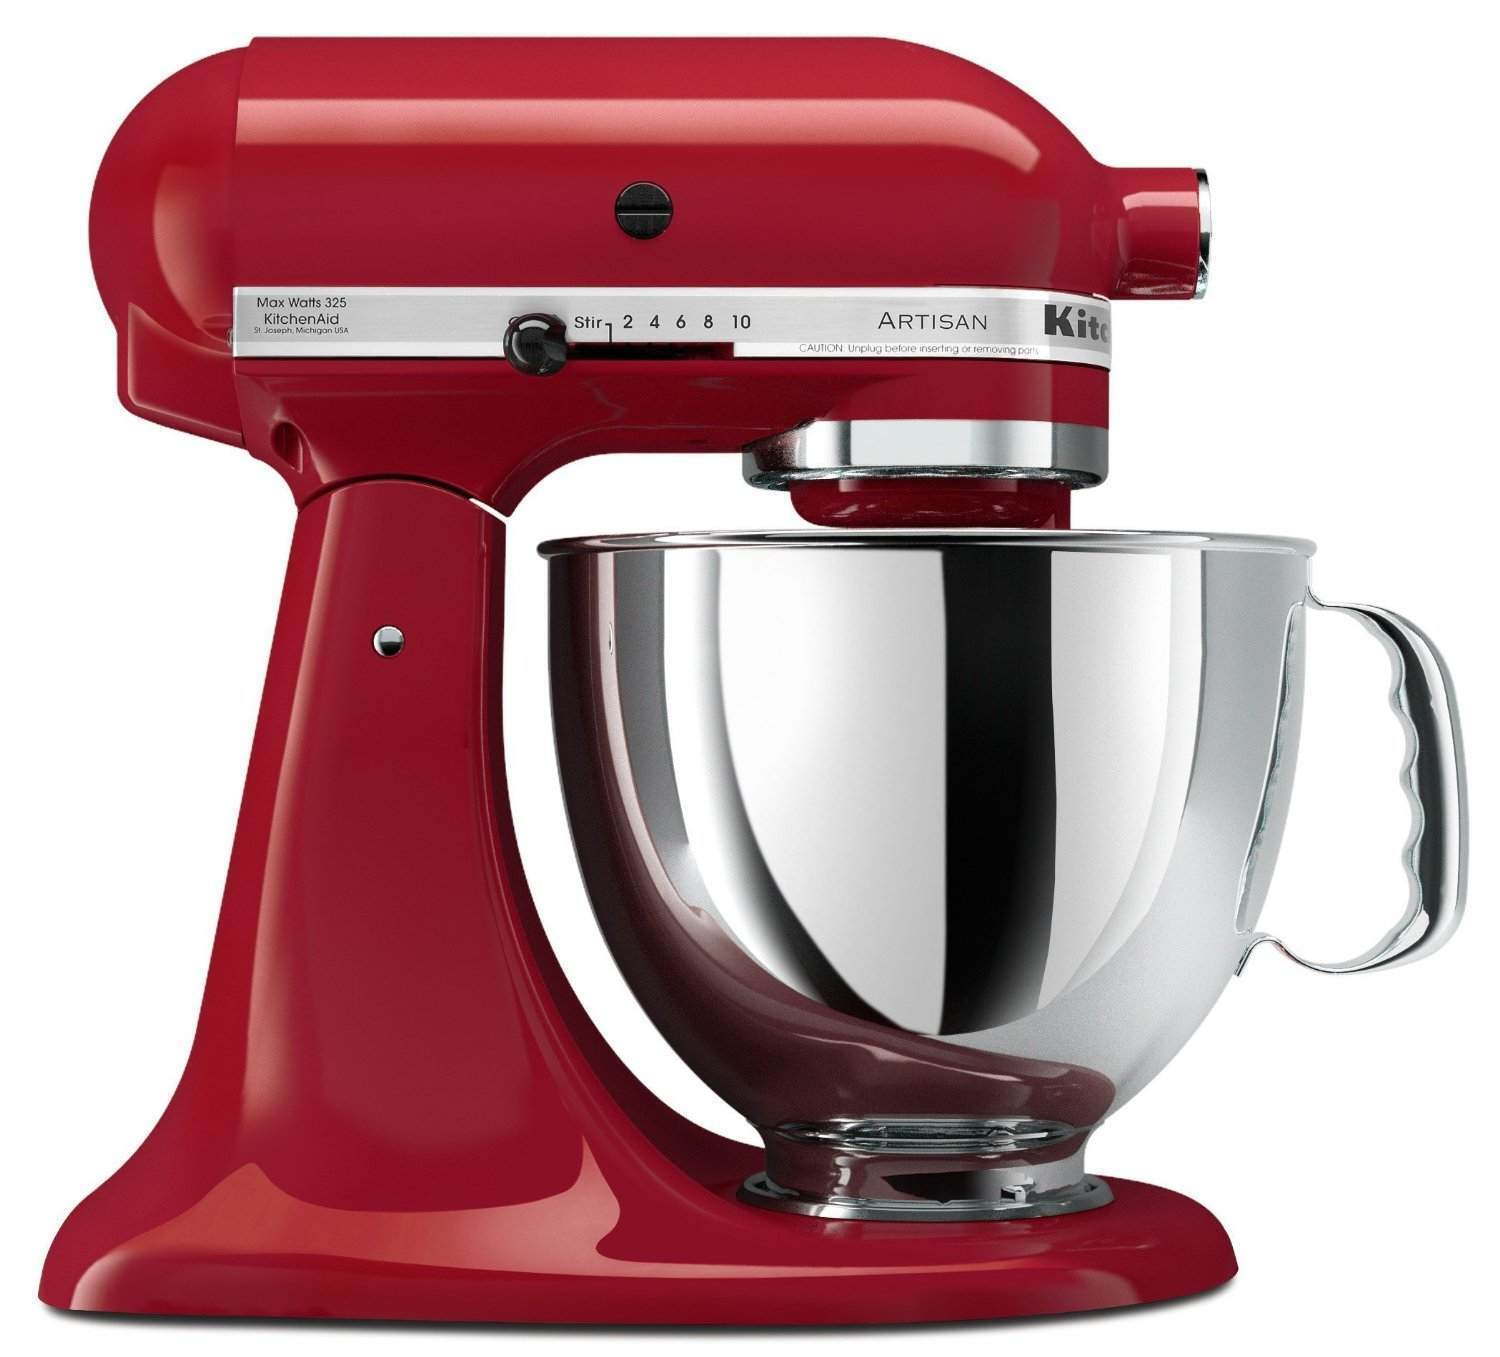 Artisan Series 5 Qt. Stand Mixer with Pouring Shield, Ice